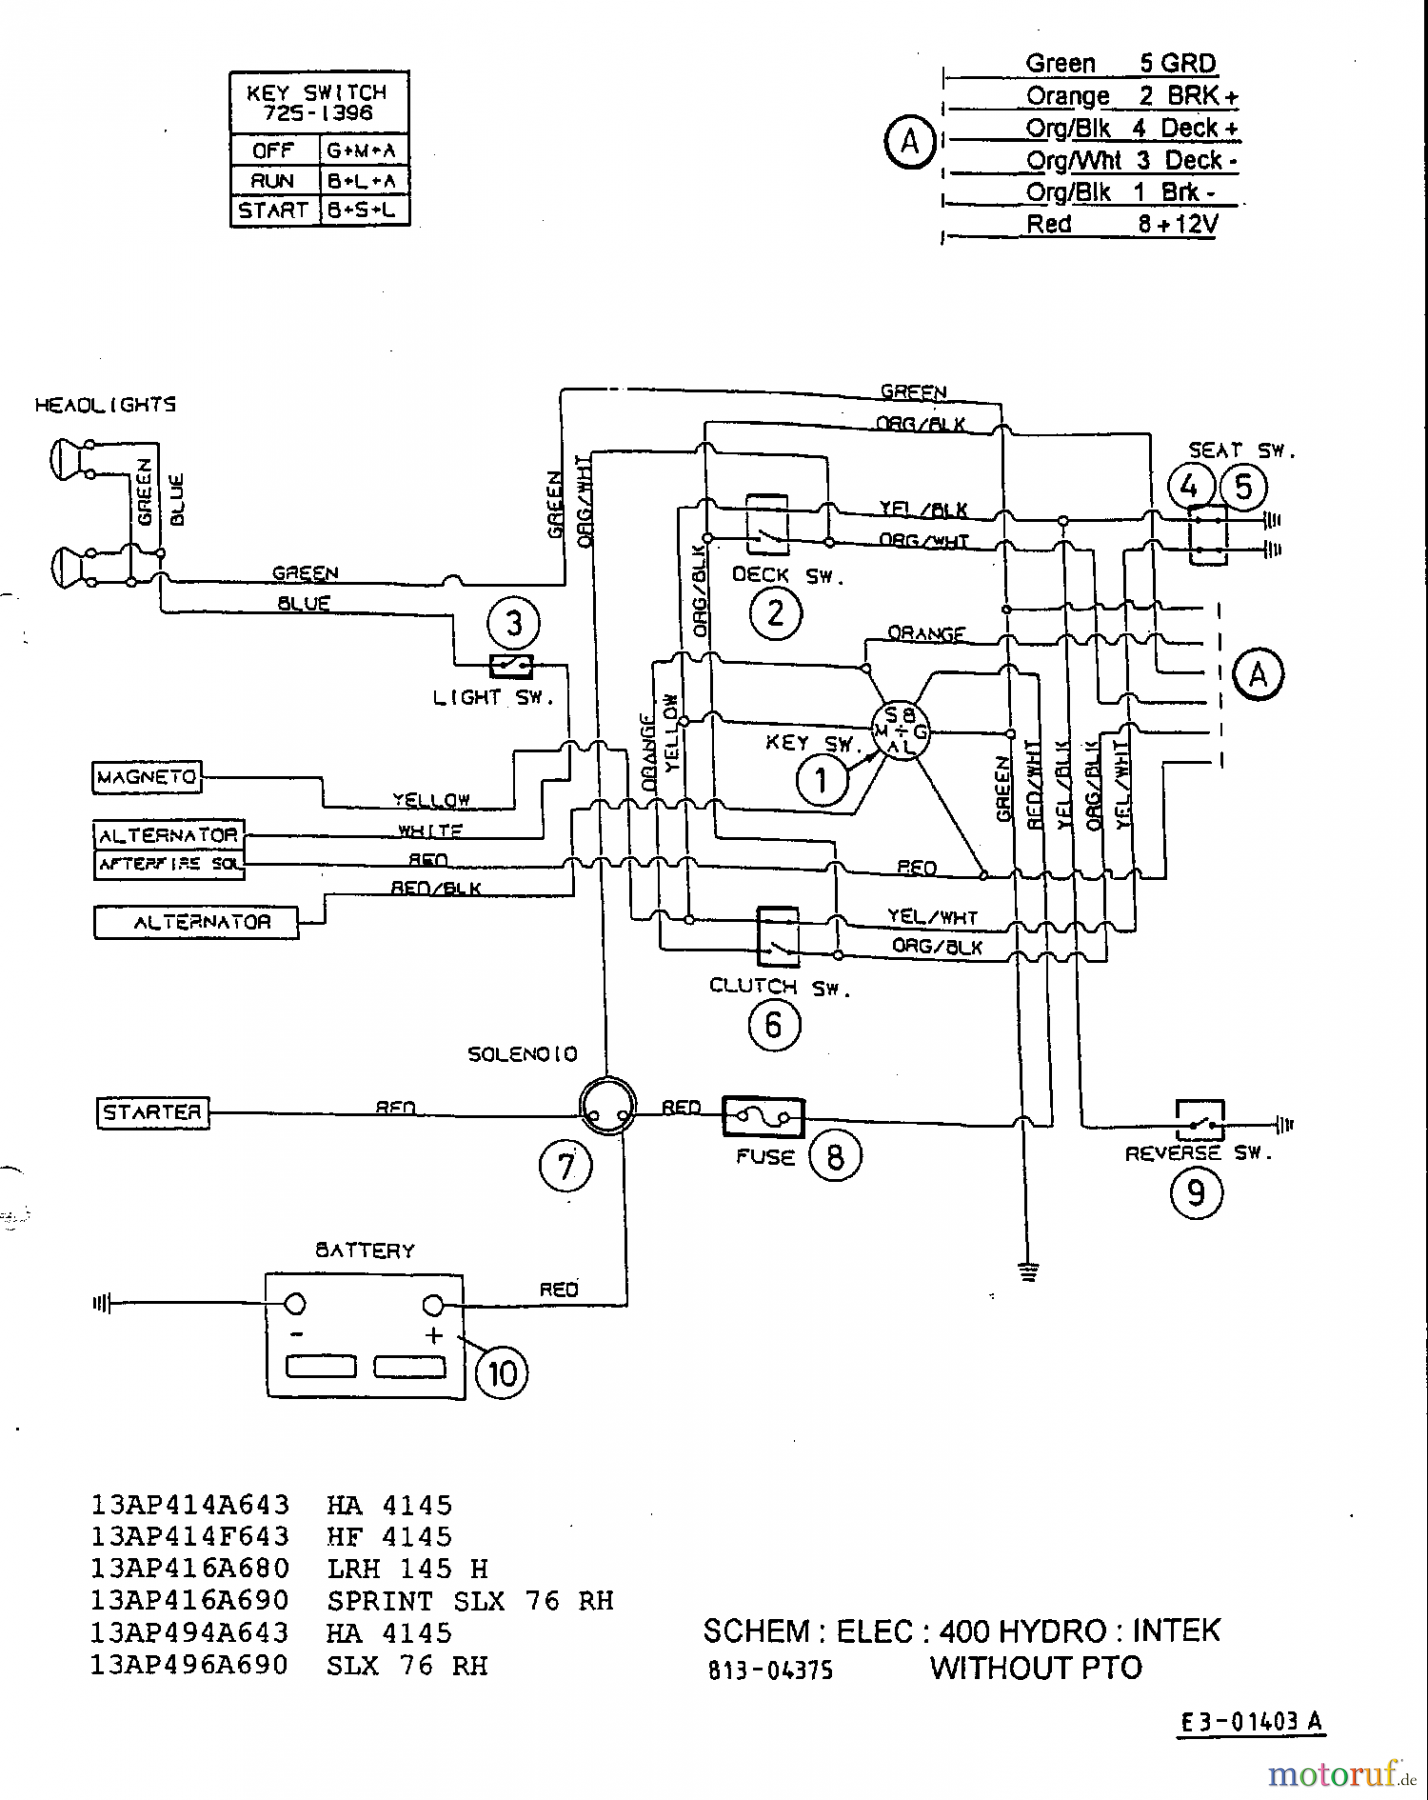 hight resolution of 145hp 42quot lawn tractor diagram and parts list for mtd ridingmower 46quot deck electric pto diagram and parts list for mtd ridingmower